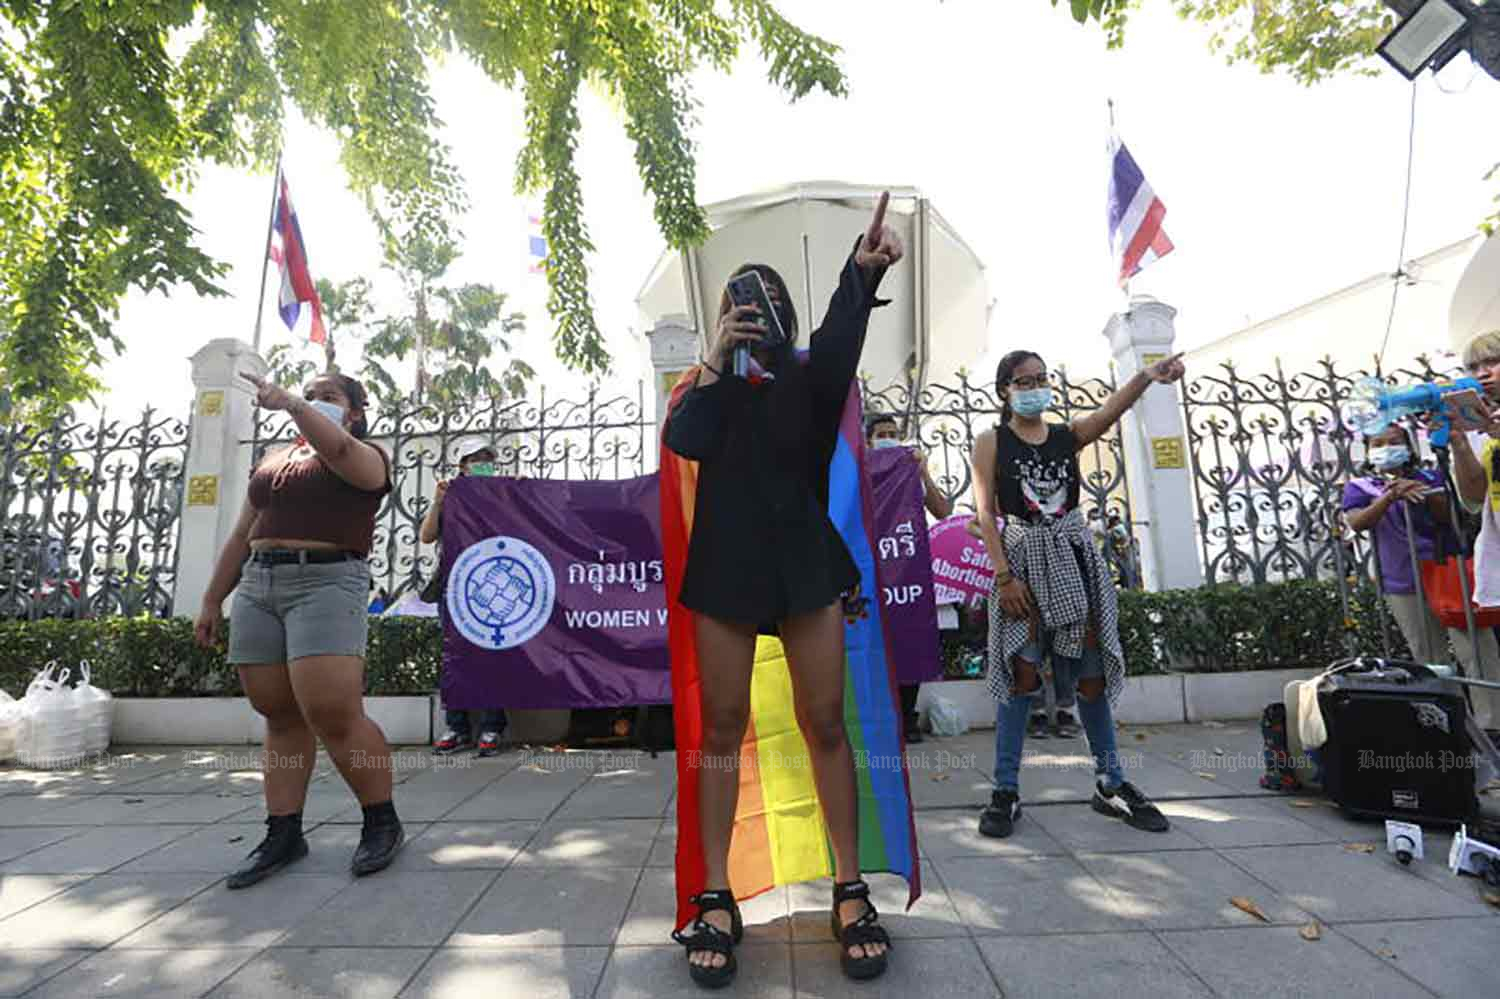 Activists gather at Government House in Bangkok on Monday to demand assistance for Covid-19-affected people, especially women, children and vulnerable people. (Photo: Arnun Chonmahatrakool)